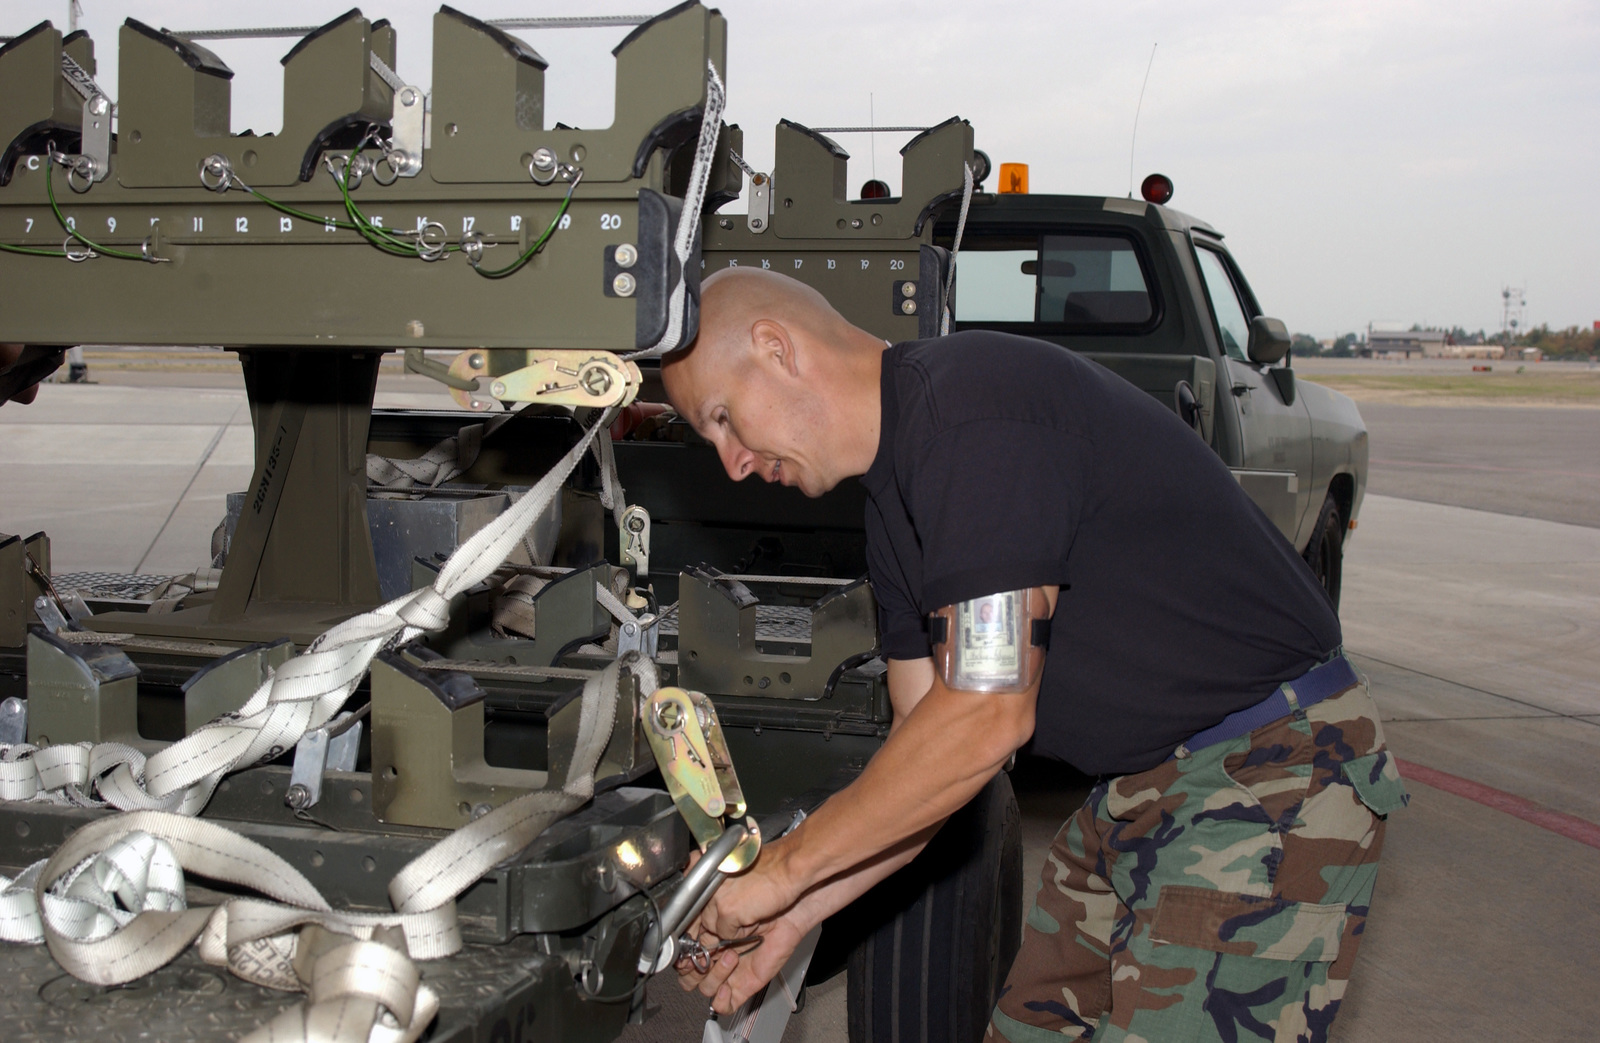 California Air National Guard STAFF SGT. Charlie Archuleta, a member of the weapons storage section at the 144th Fighter Wing inspect a bomb loading trailer during an Operation Readiness Exercise at Fresno Air National Guard Base at Fresno Yosemite International Aiport, Calif., on Nov. 3, 2004. (USAF PHOTO by MASTER SGT. Matthew P.Millson) (Released)